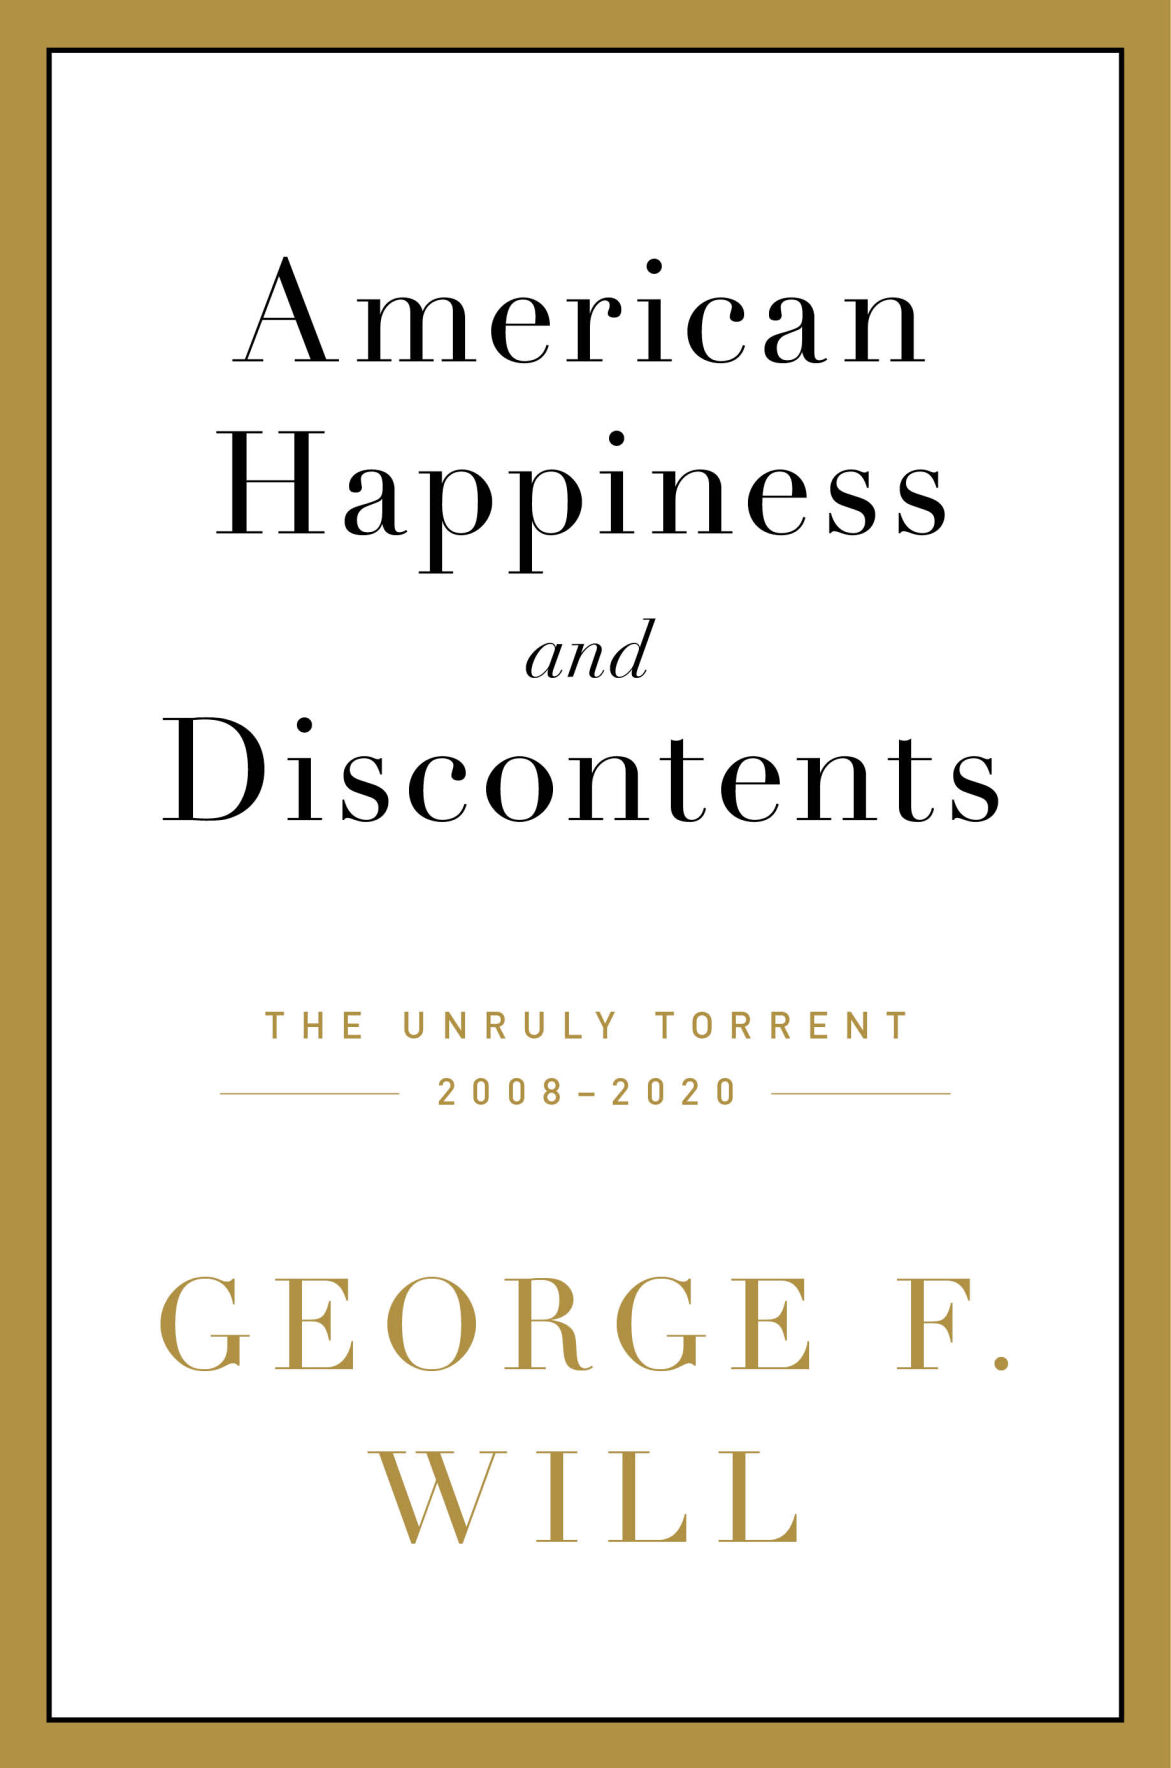 George F. Will - American Happiness